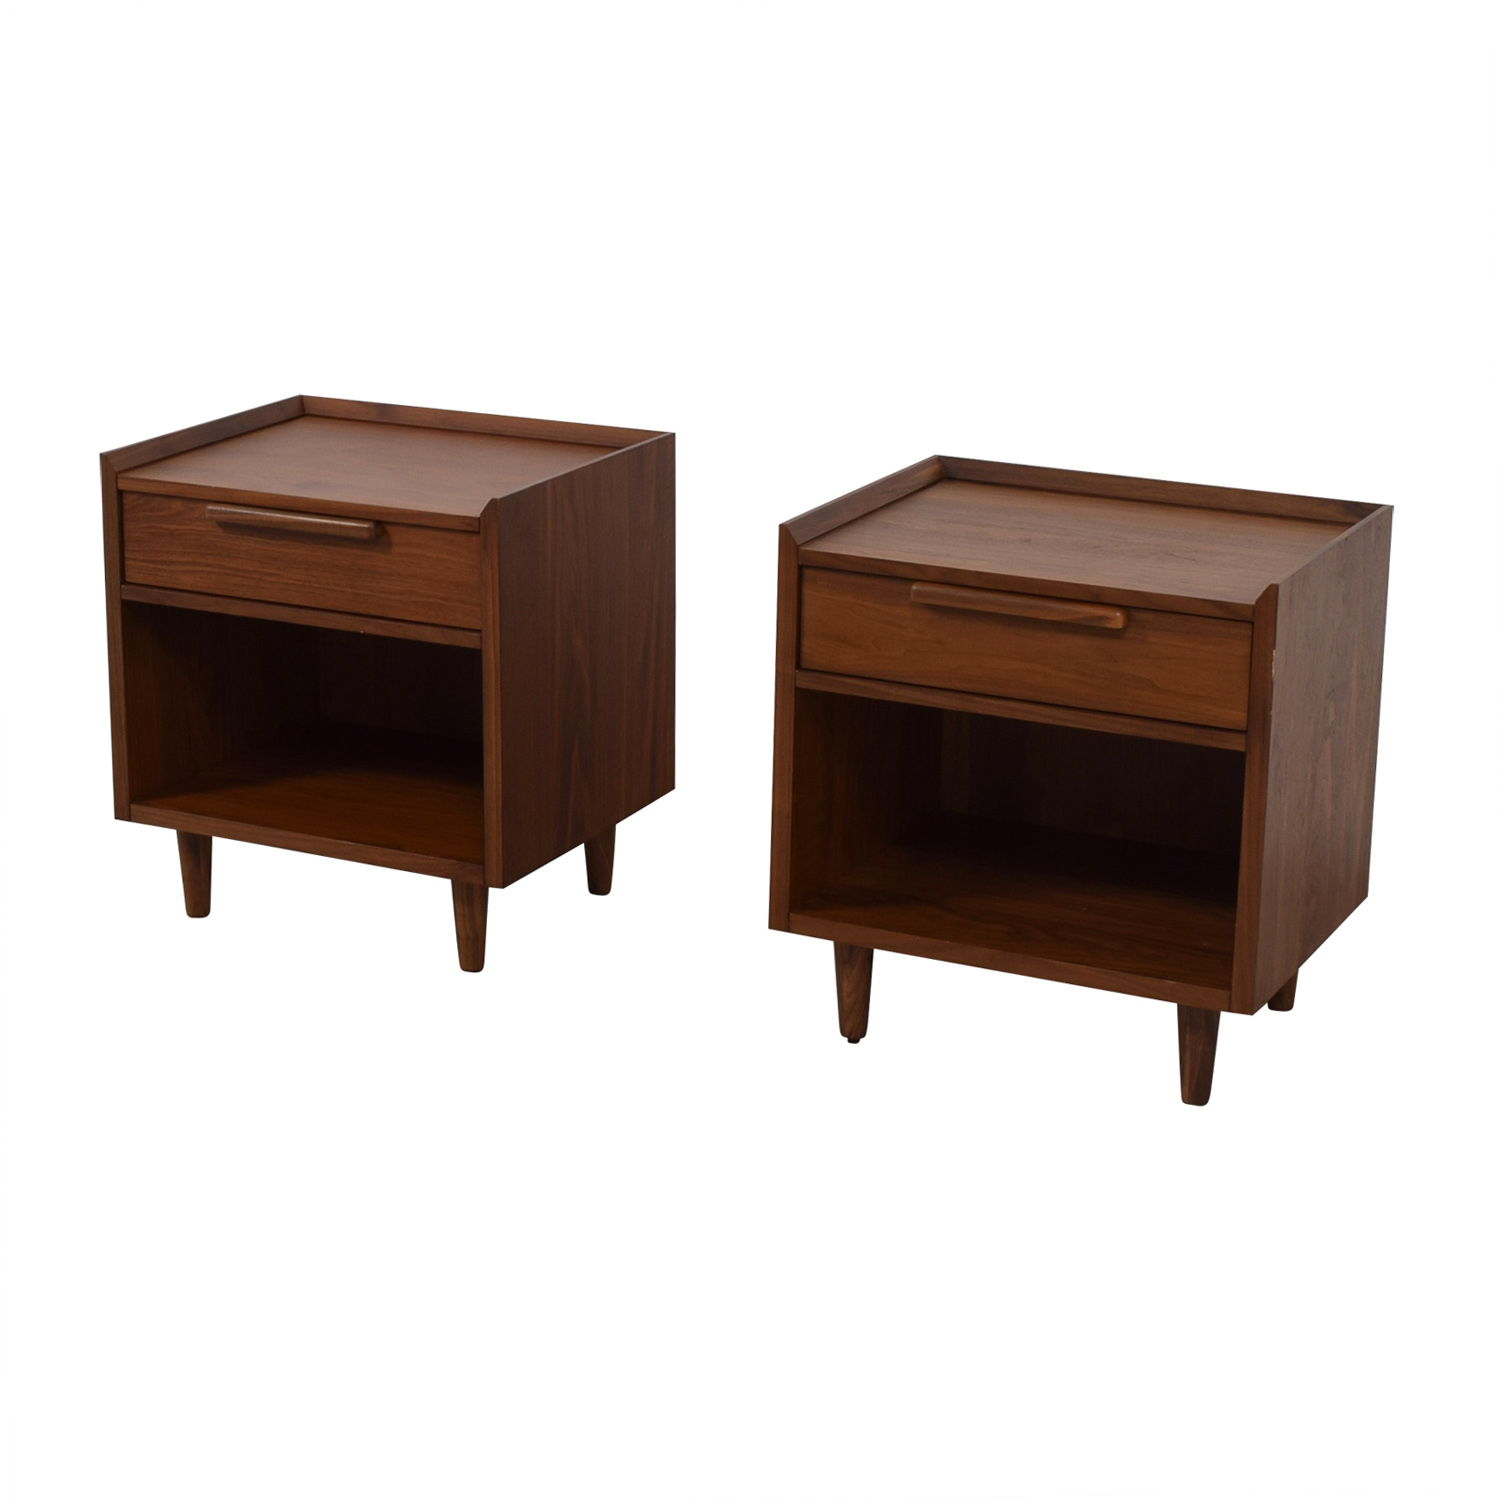 Crate & Barrel Crate & Barrel Single Drawer Nightstands nj